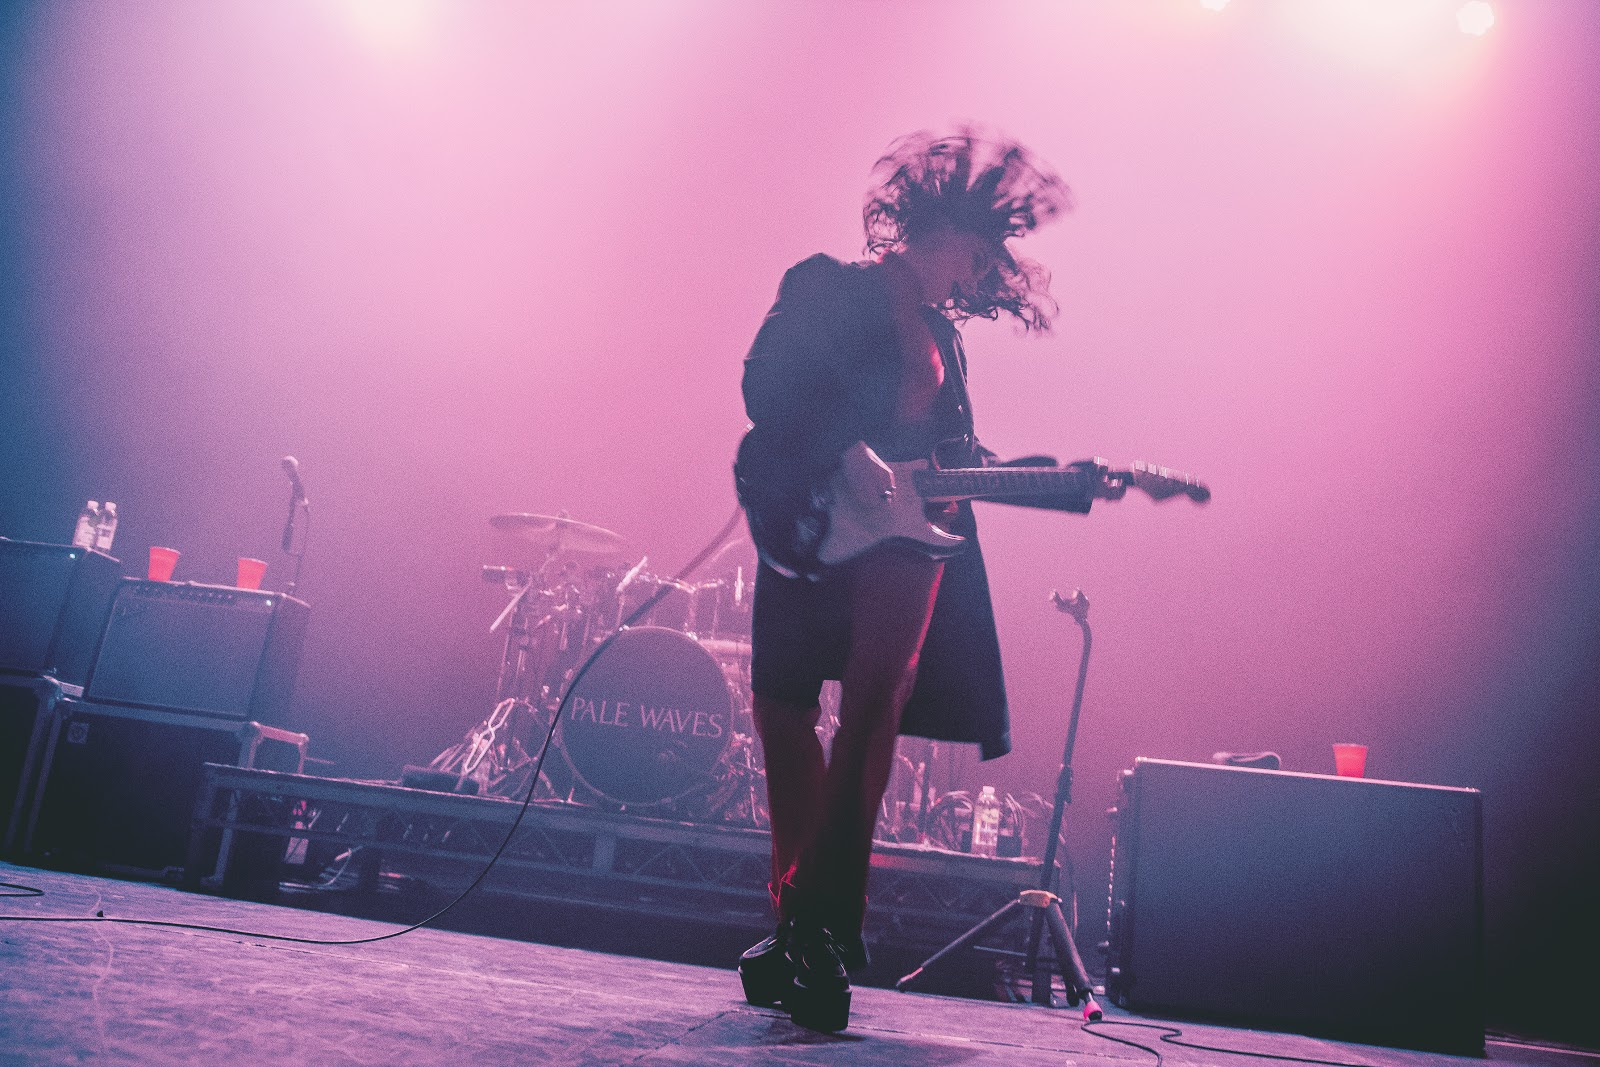 Pale Waves Live at The Fonda Theatre, Los Angeles 2018 © Caitlin Ison